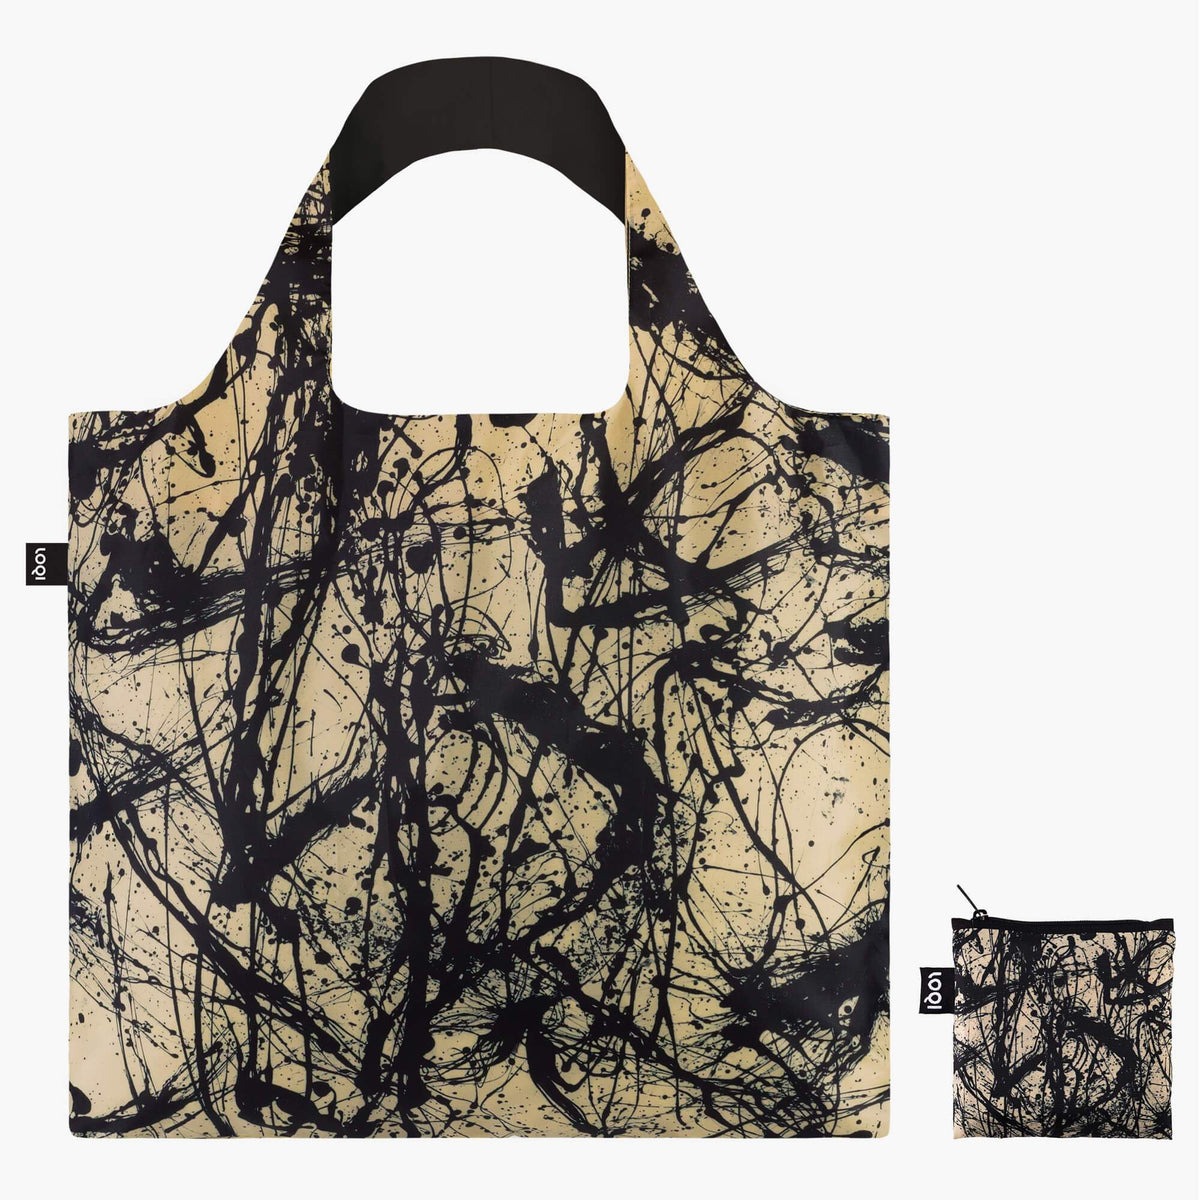 LOQI Jackson Pollock Number 32, 1950 Bag with Zip Pocket